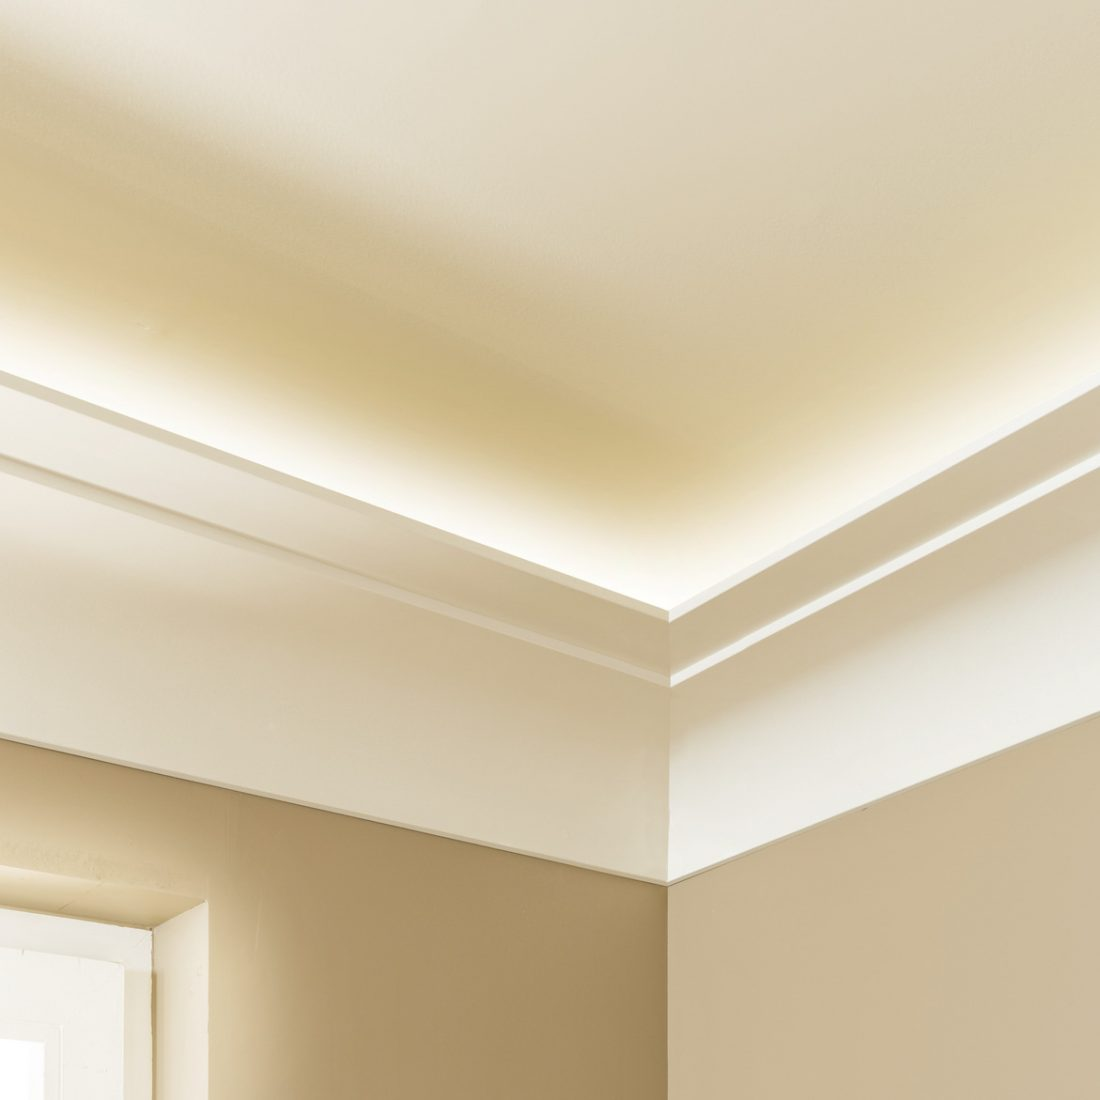 Coving by Copley Decor